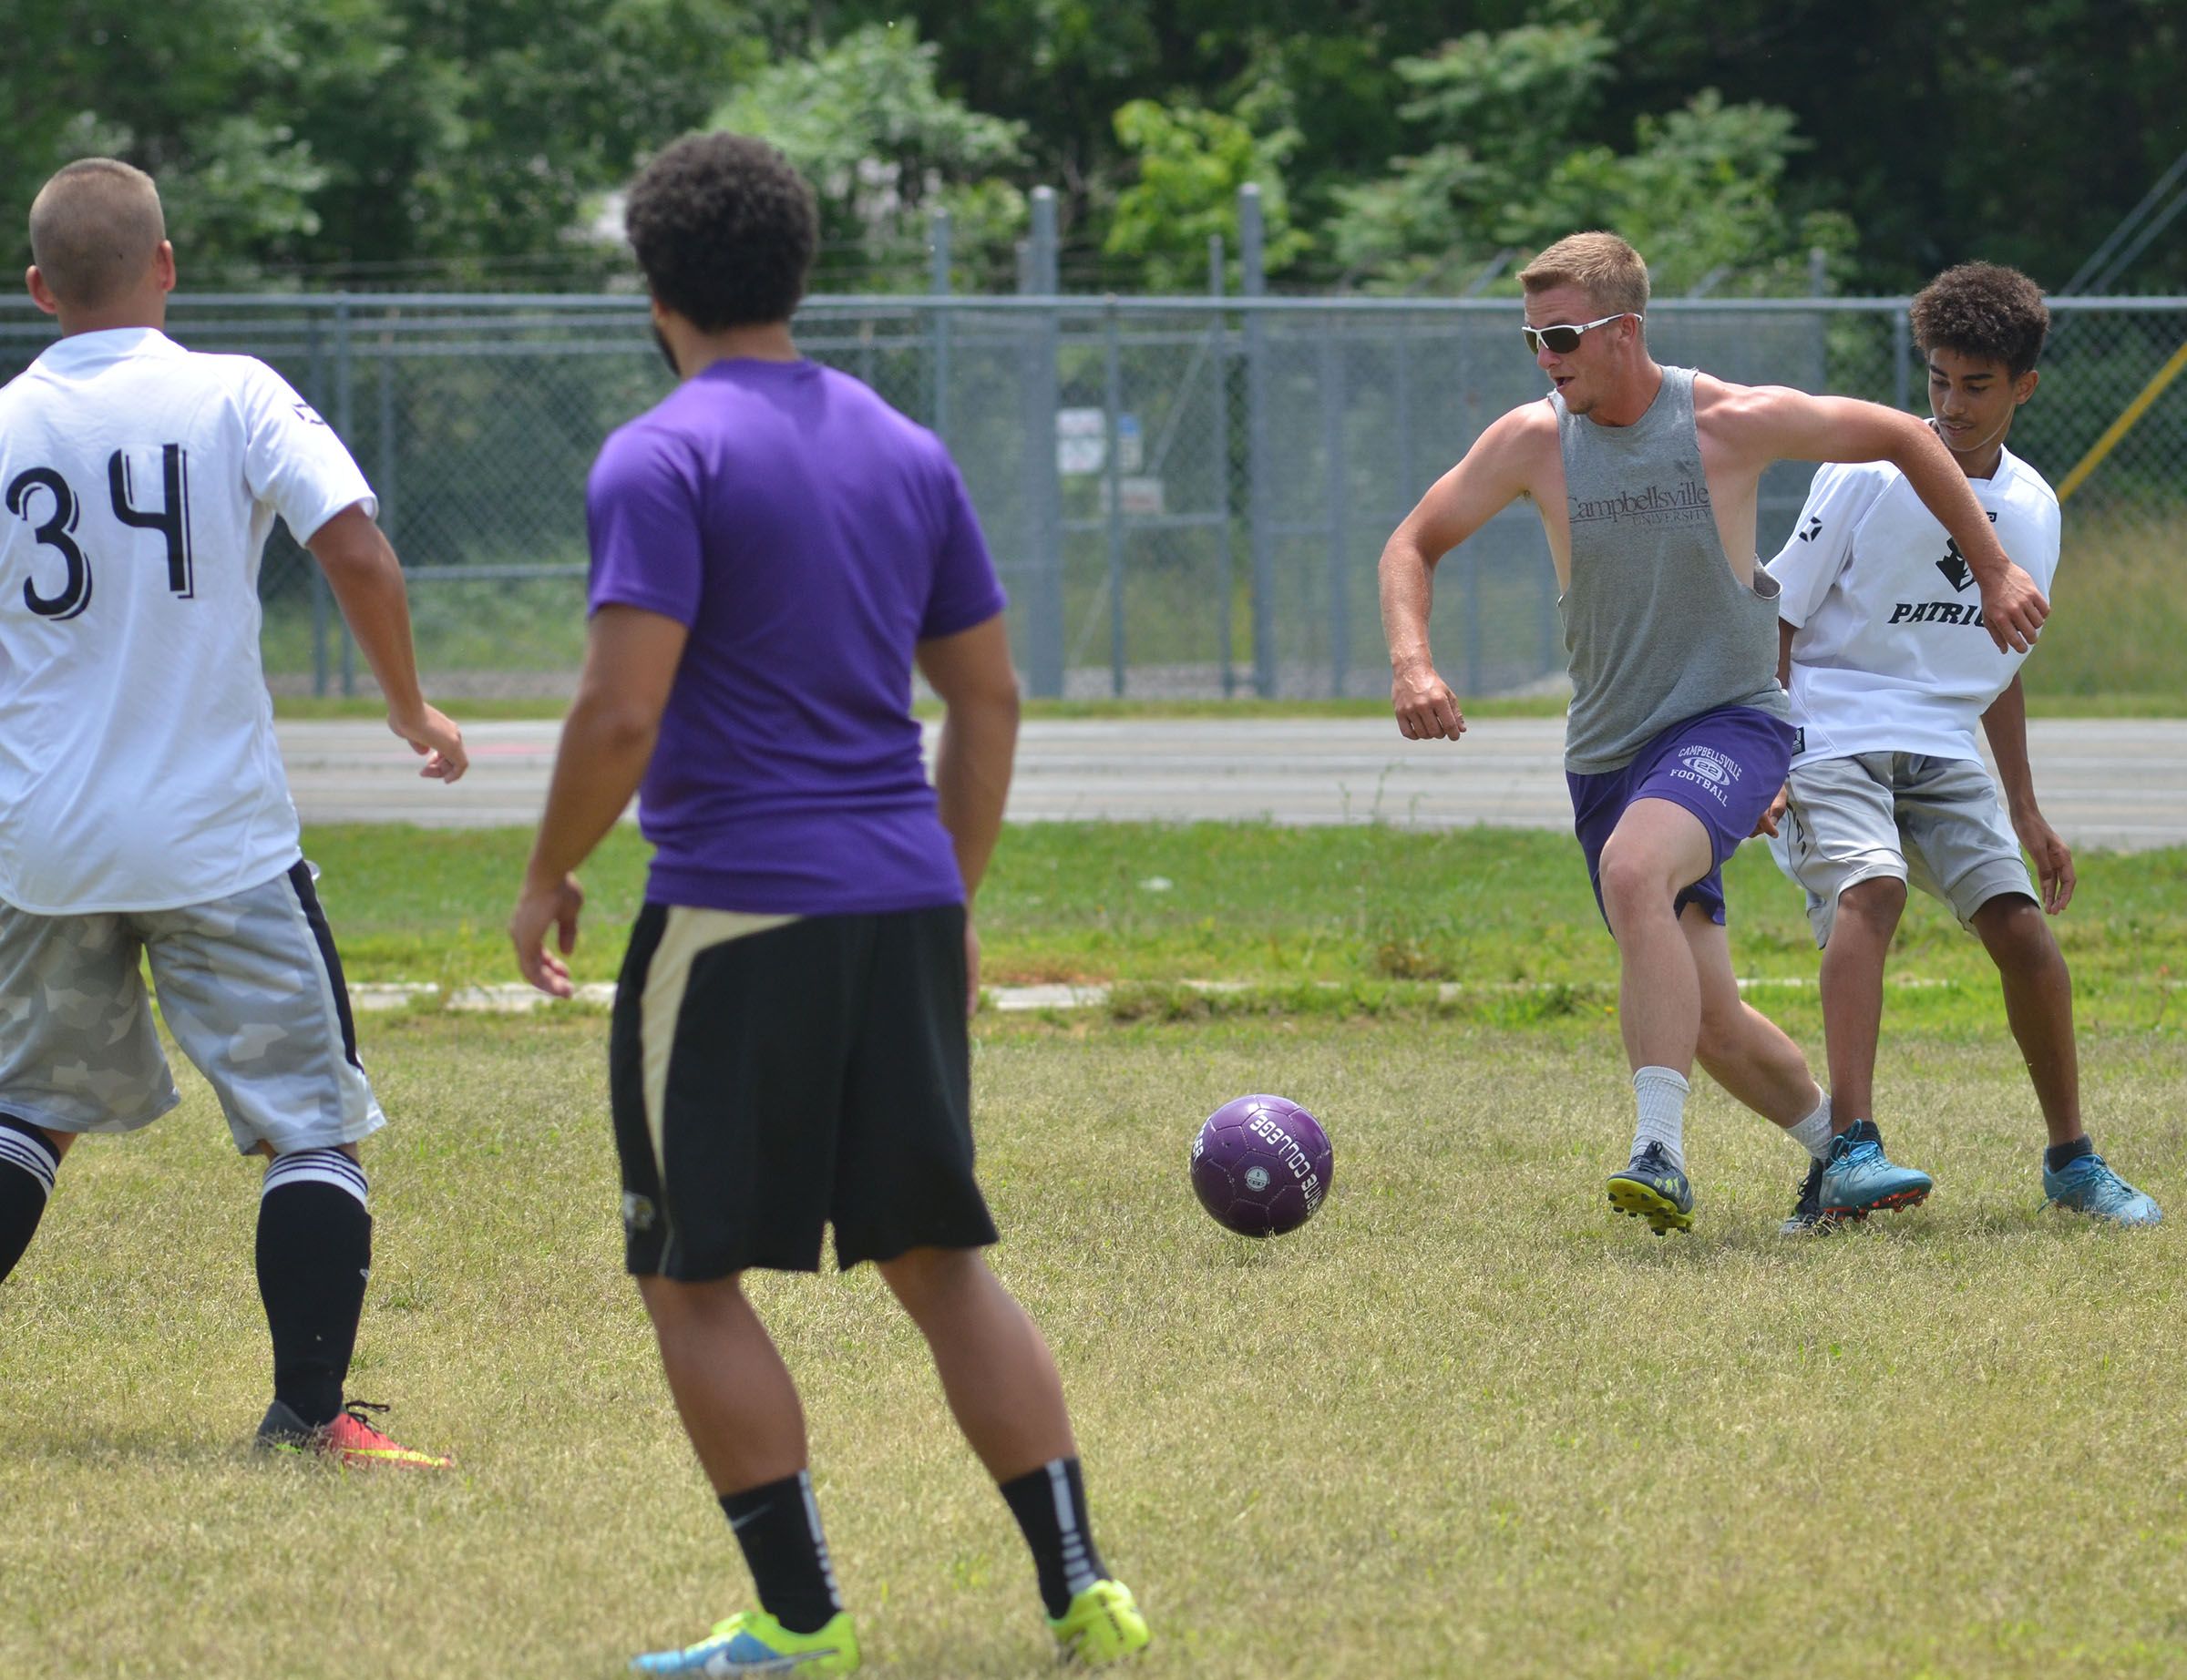 CHS soccer alumni player Logan Dial kicks the ball.